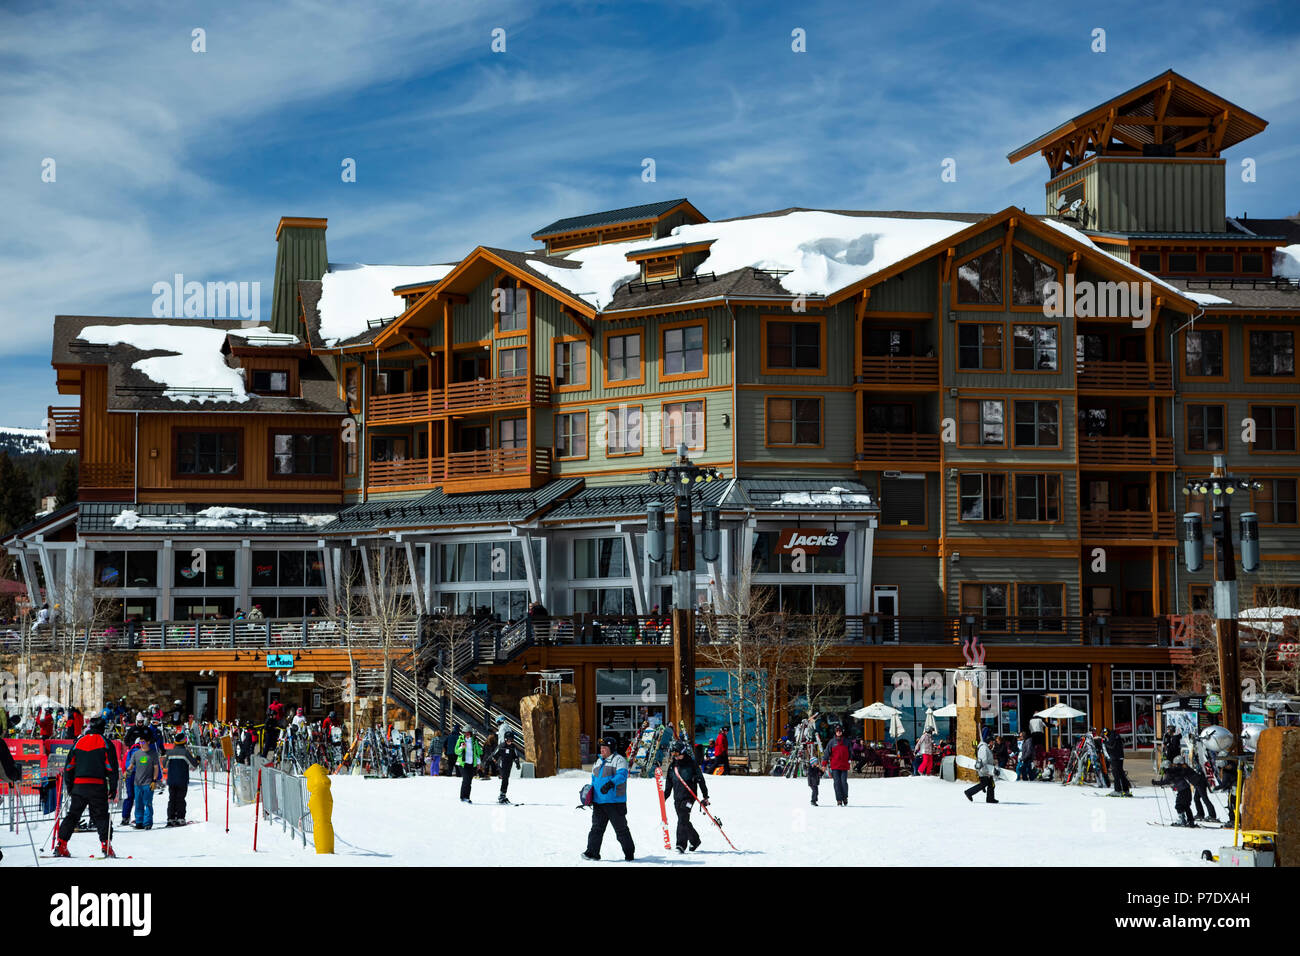 Center Village, Copper Mountain Ski Resort, Copper Mountain, Colorado USA - Stock Image